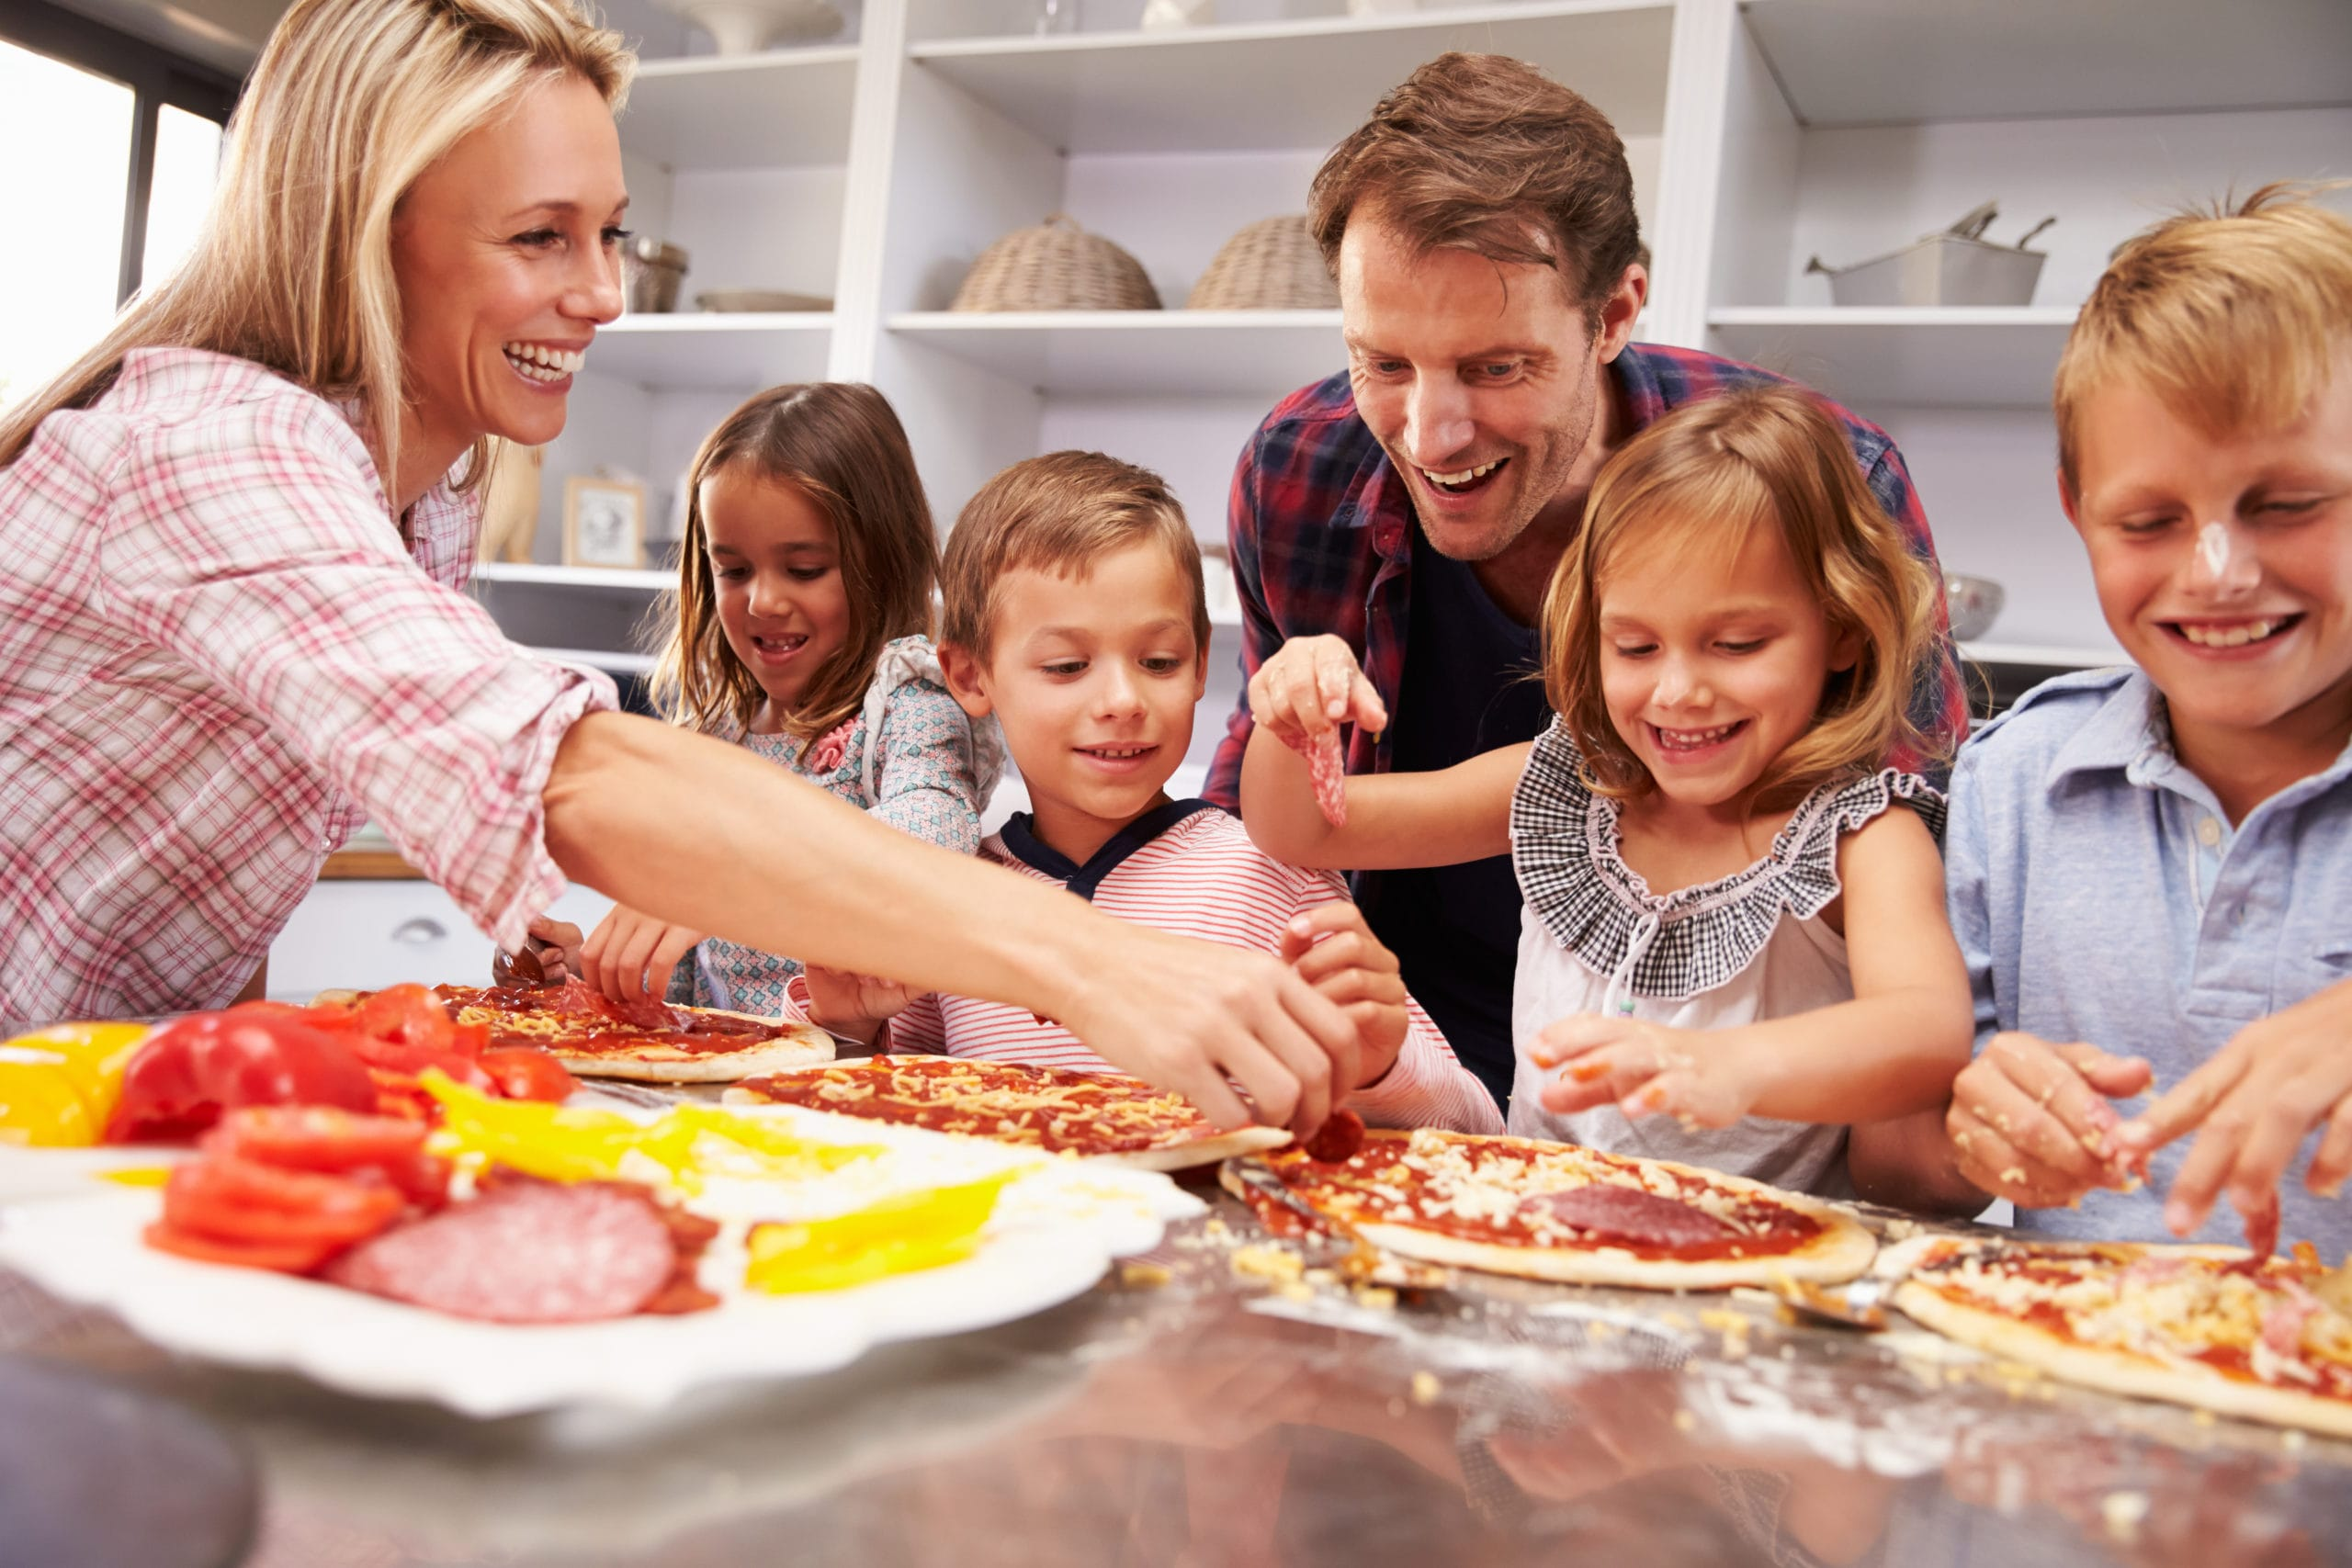 A family cooks dinner together